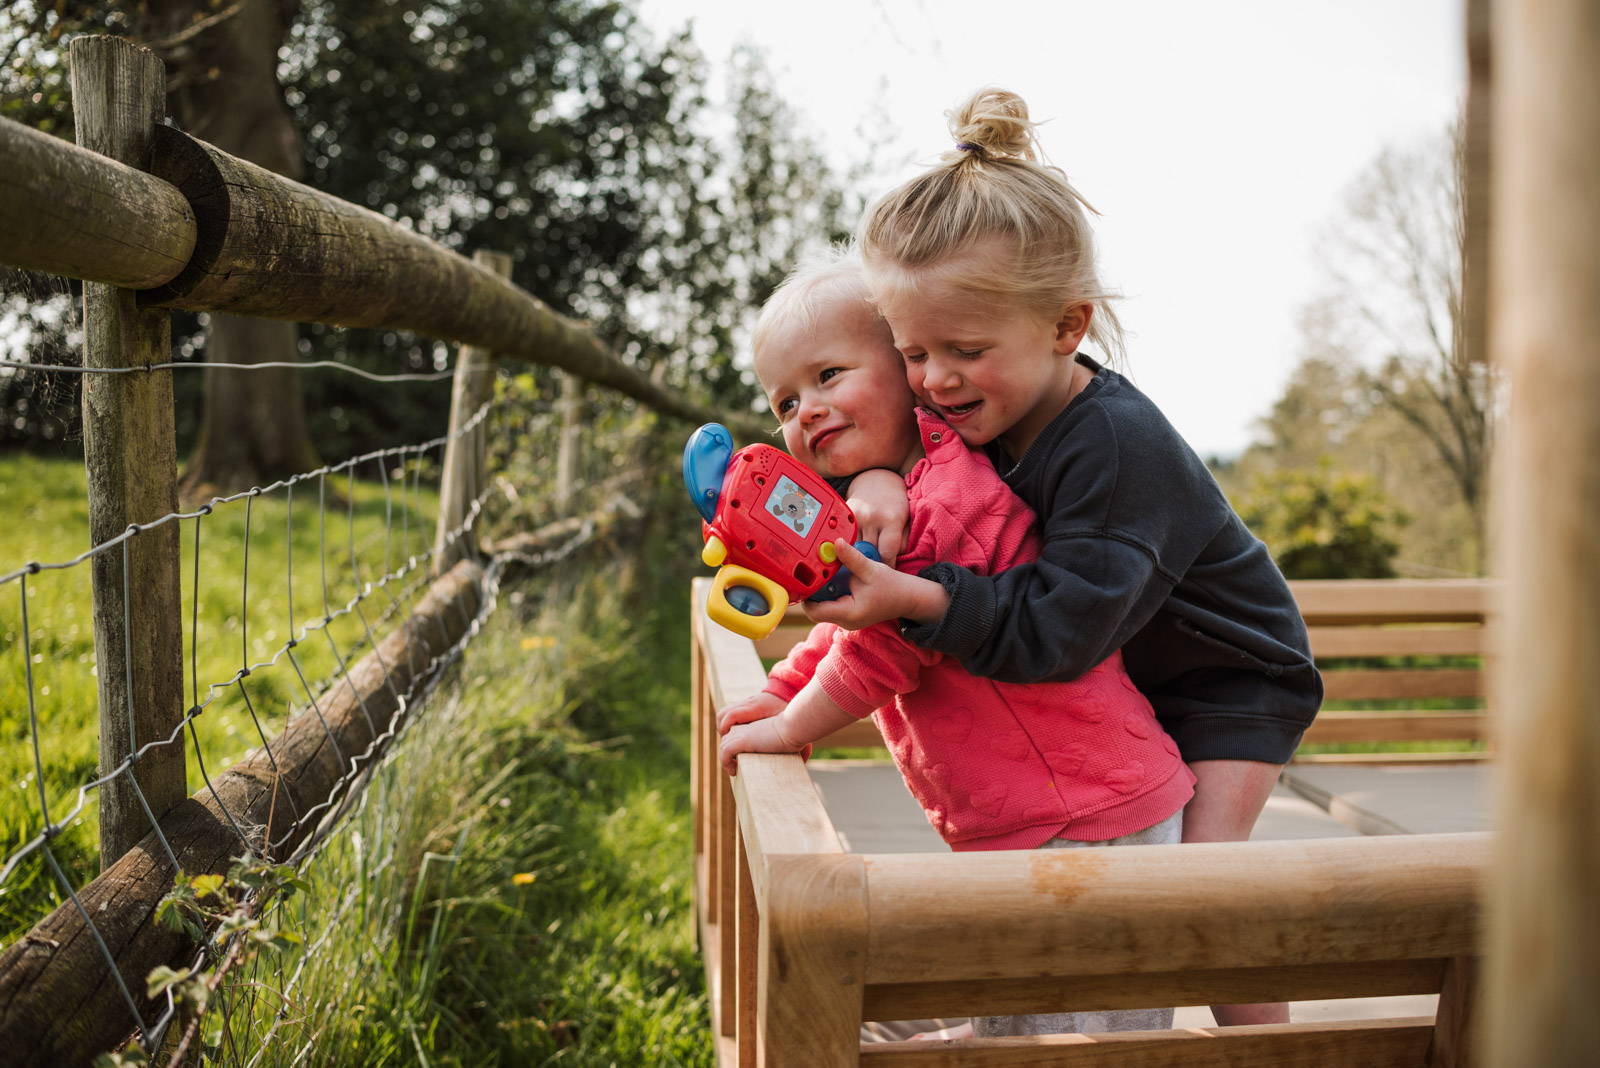 Natural family photography, siblings hugging, The Ginger Collective Photography